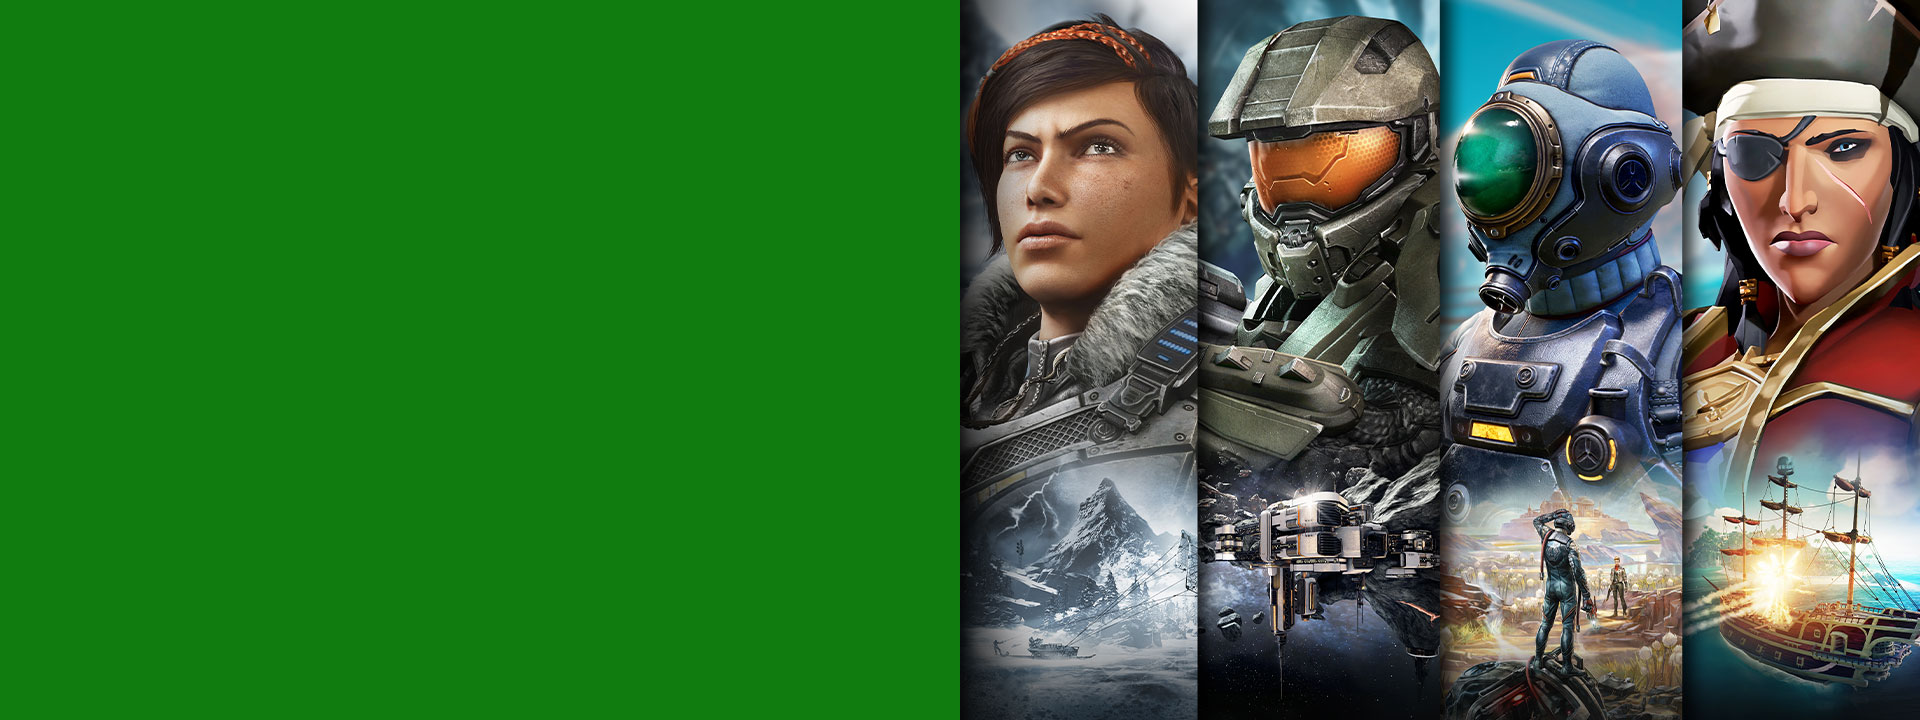 Xbox Game Pass game characters from Gears 5, Halo, The Outer Worlds and Sea of Thieves.